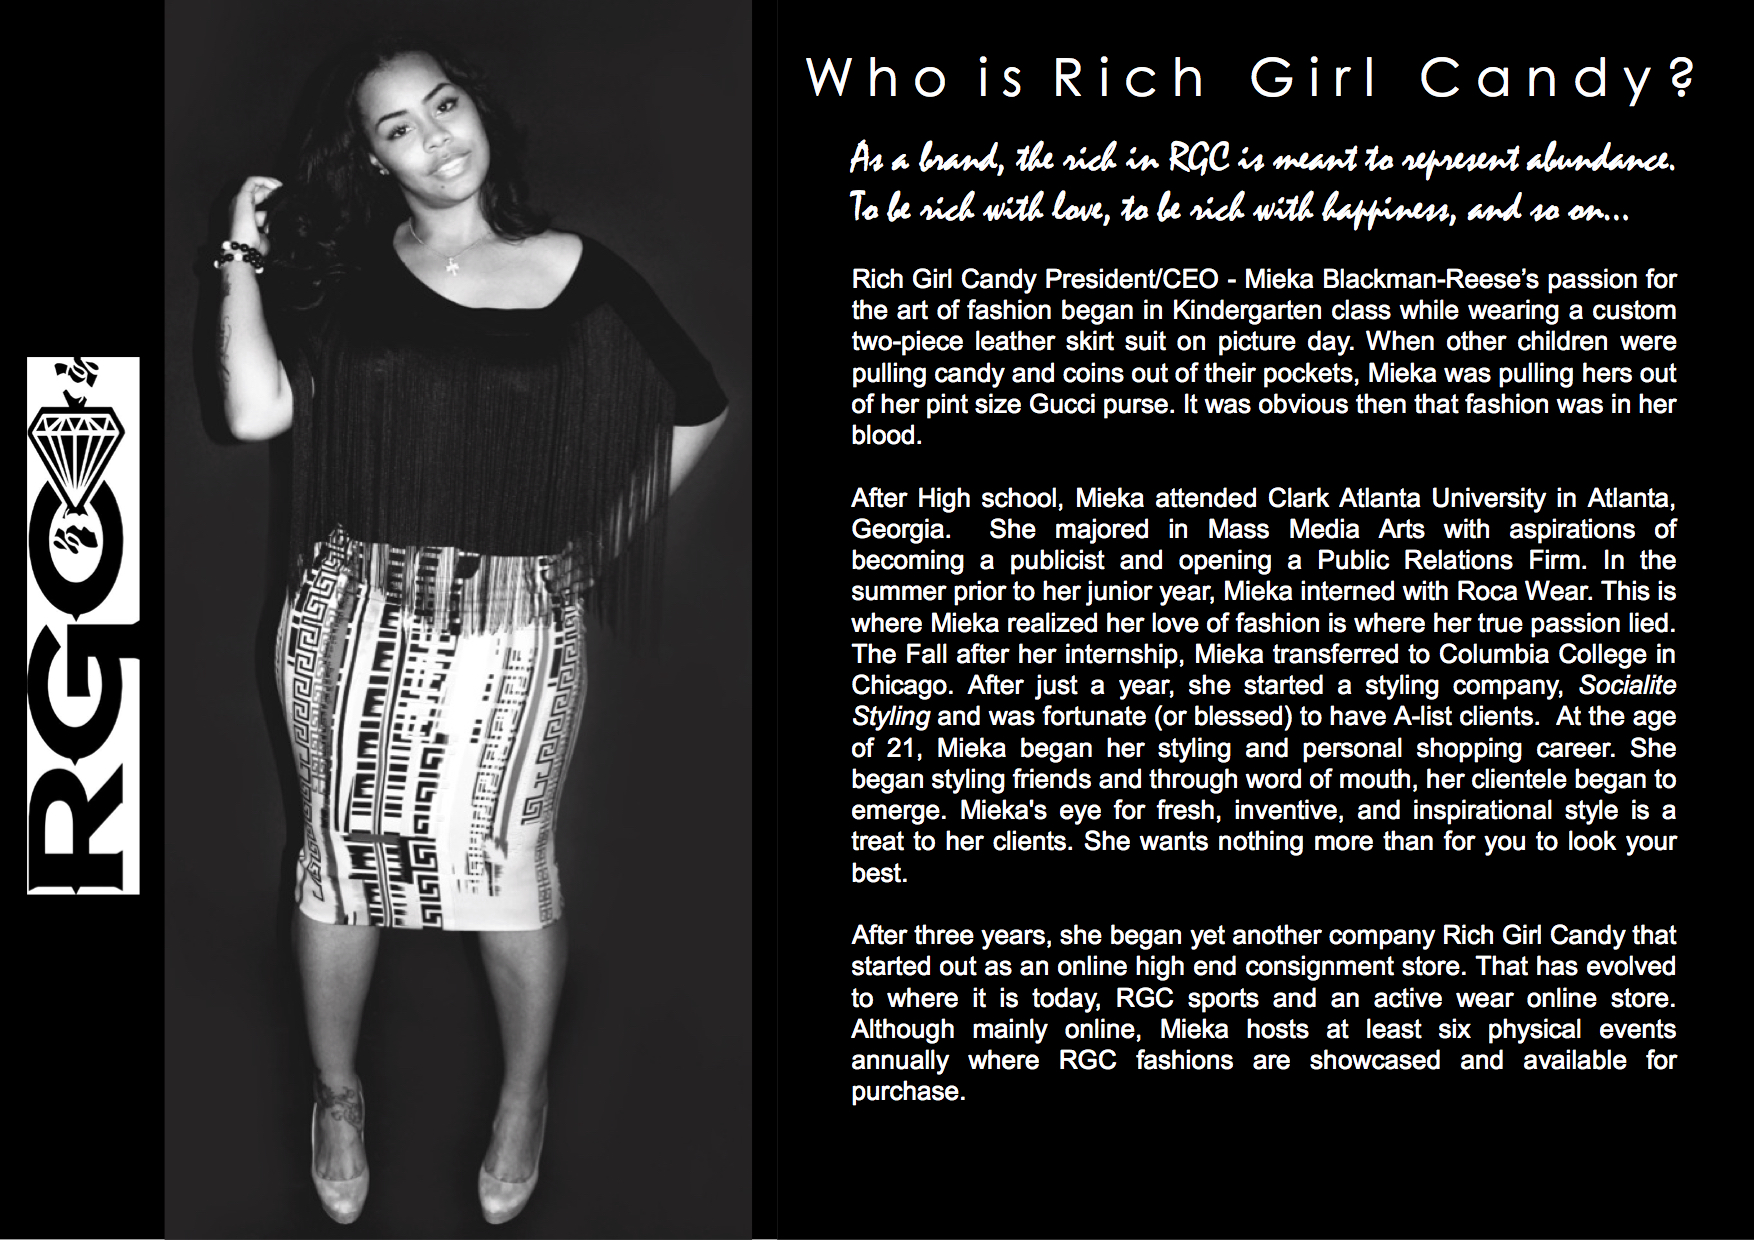 Rich Girl Candy Page 2.jpg